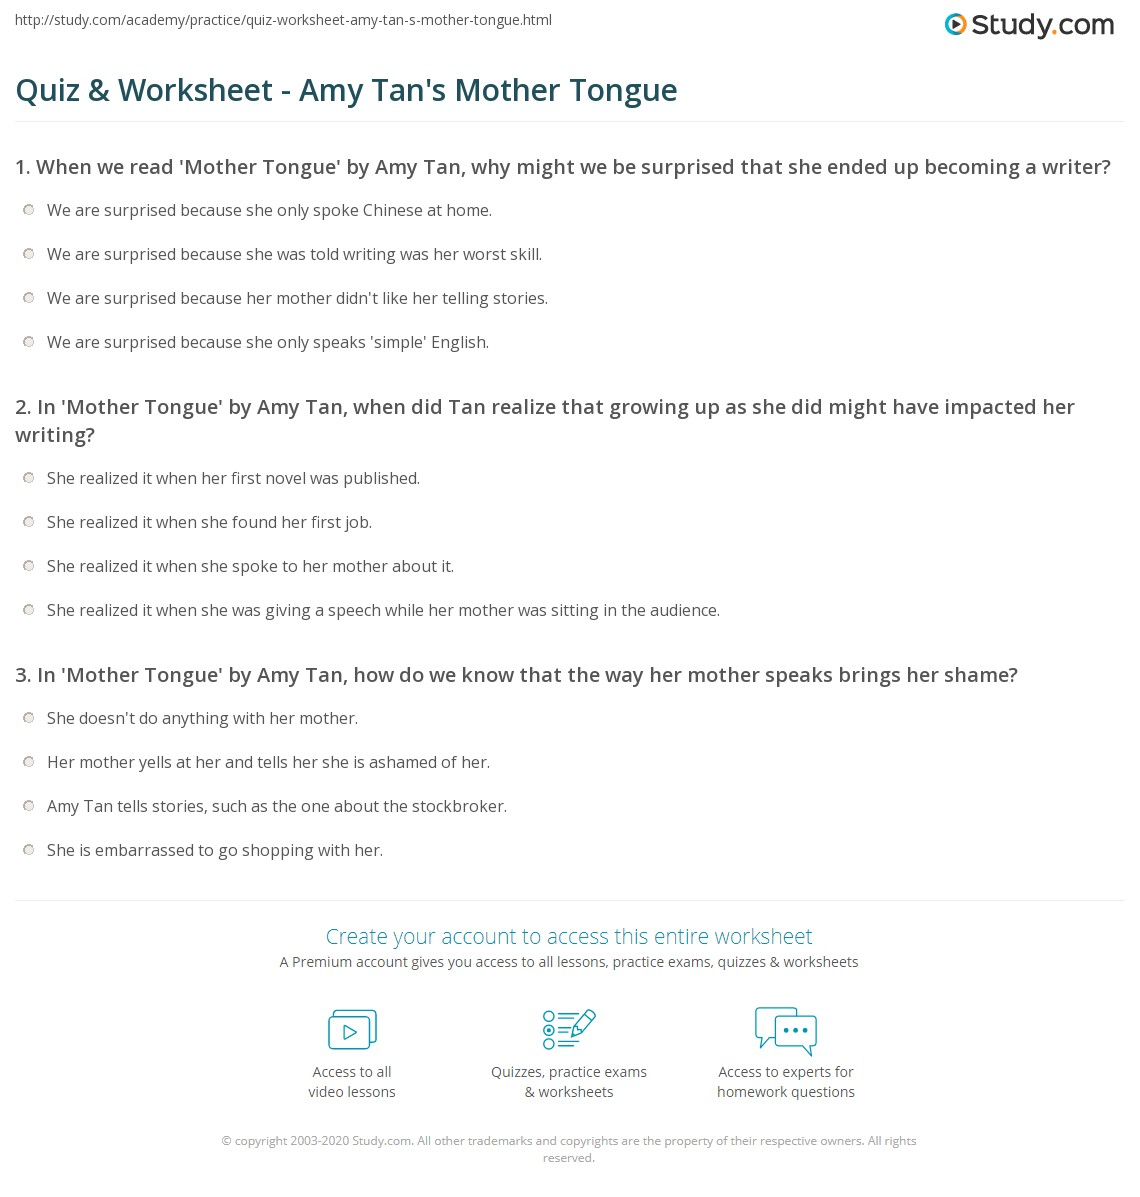 an analysis of the topic of the rhetorical analysis of the mother tongue by amy tan Research paper topics amy tan short fiction analysis - essay homework help amy tan short fiction analysis (literary essentials: short fiction masterpieces) print print document pdf.